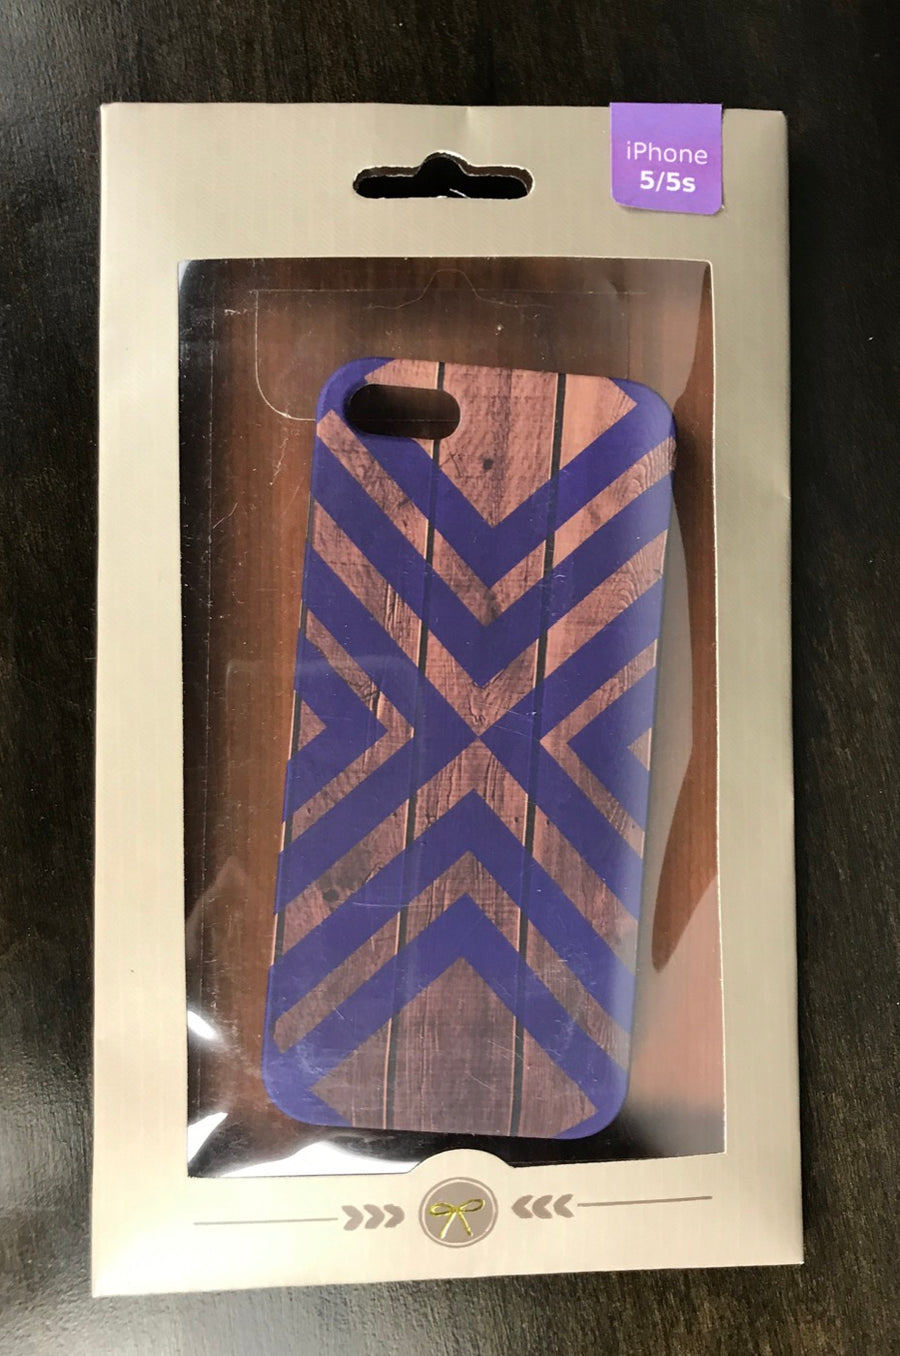 Spiced Equestrian Phone Case in Blueberry Accent - iPhone 5/5s